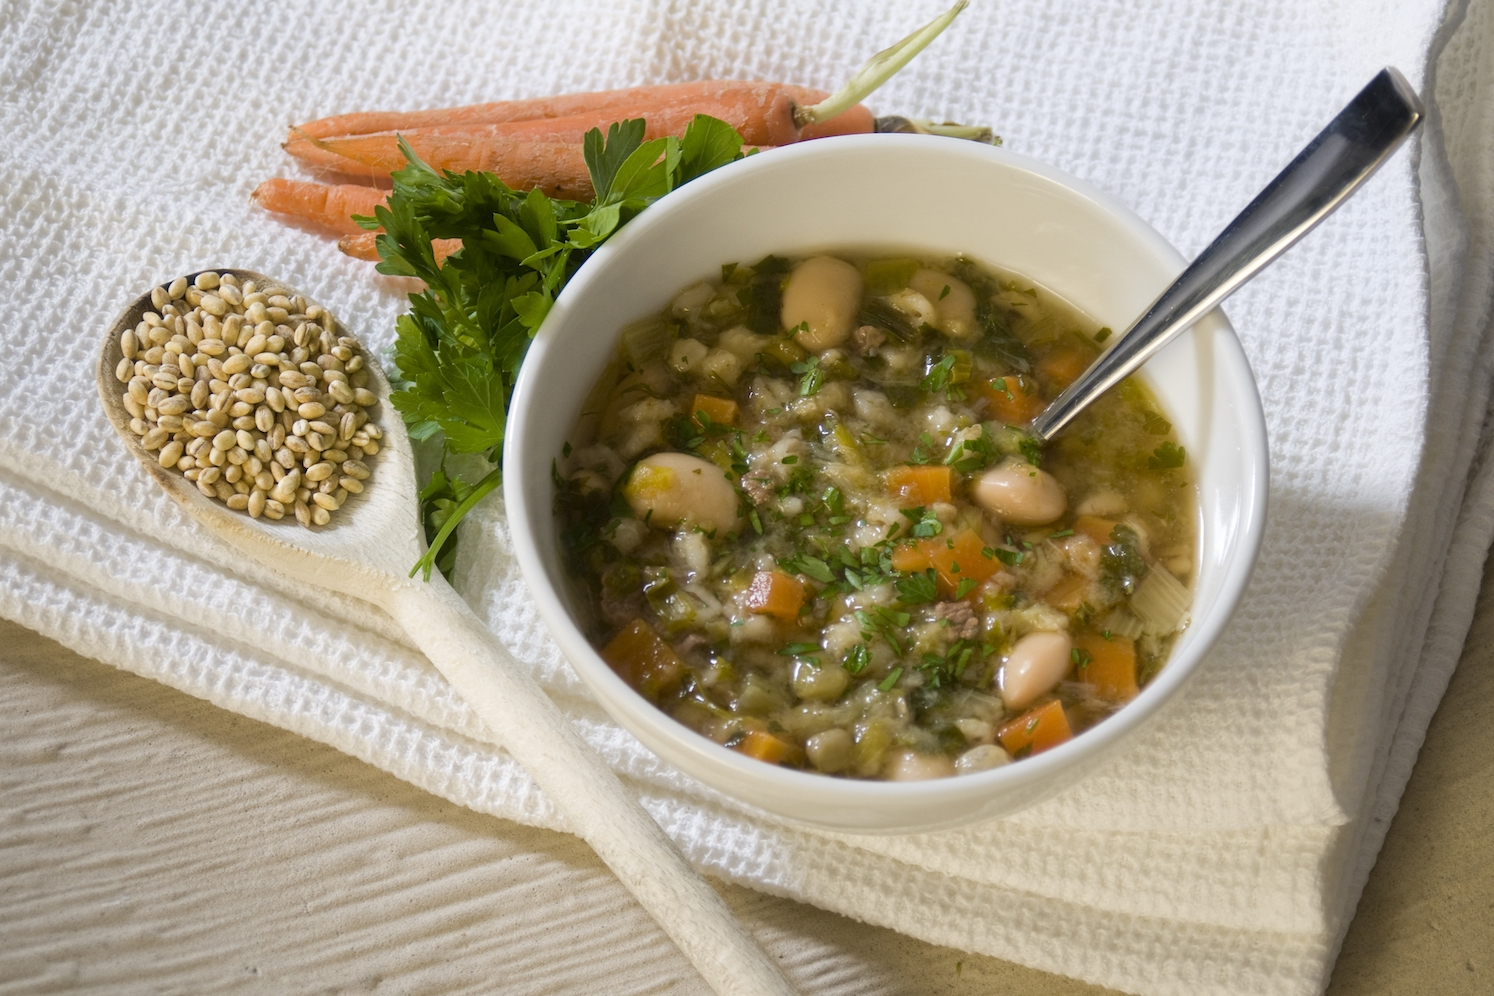 scotch broth (the secret is the butter beans!) -